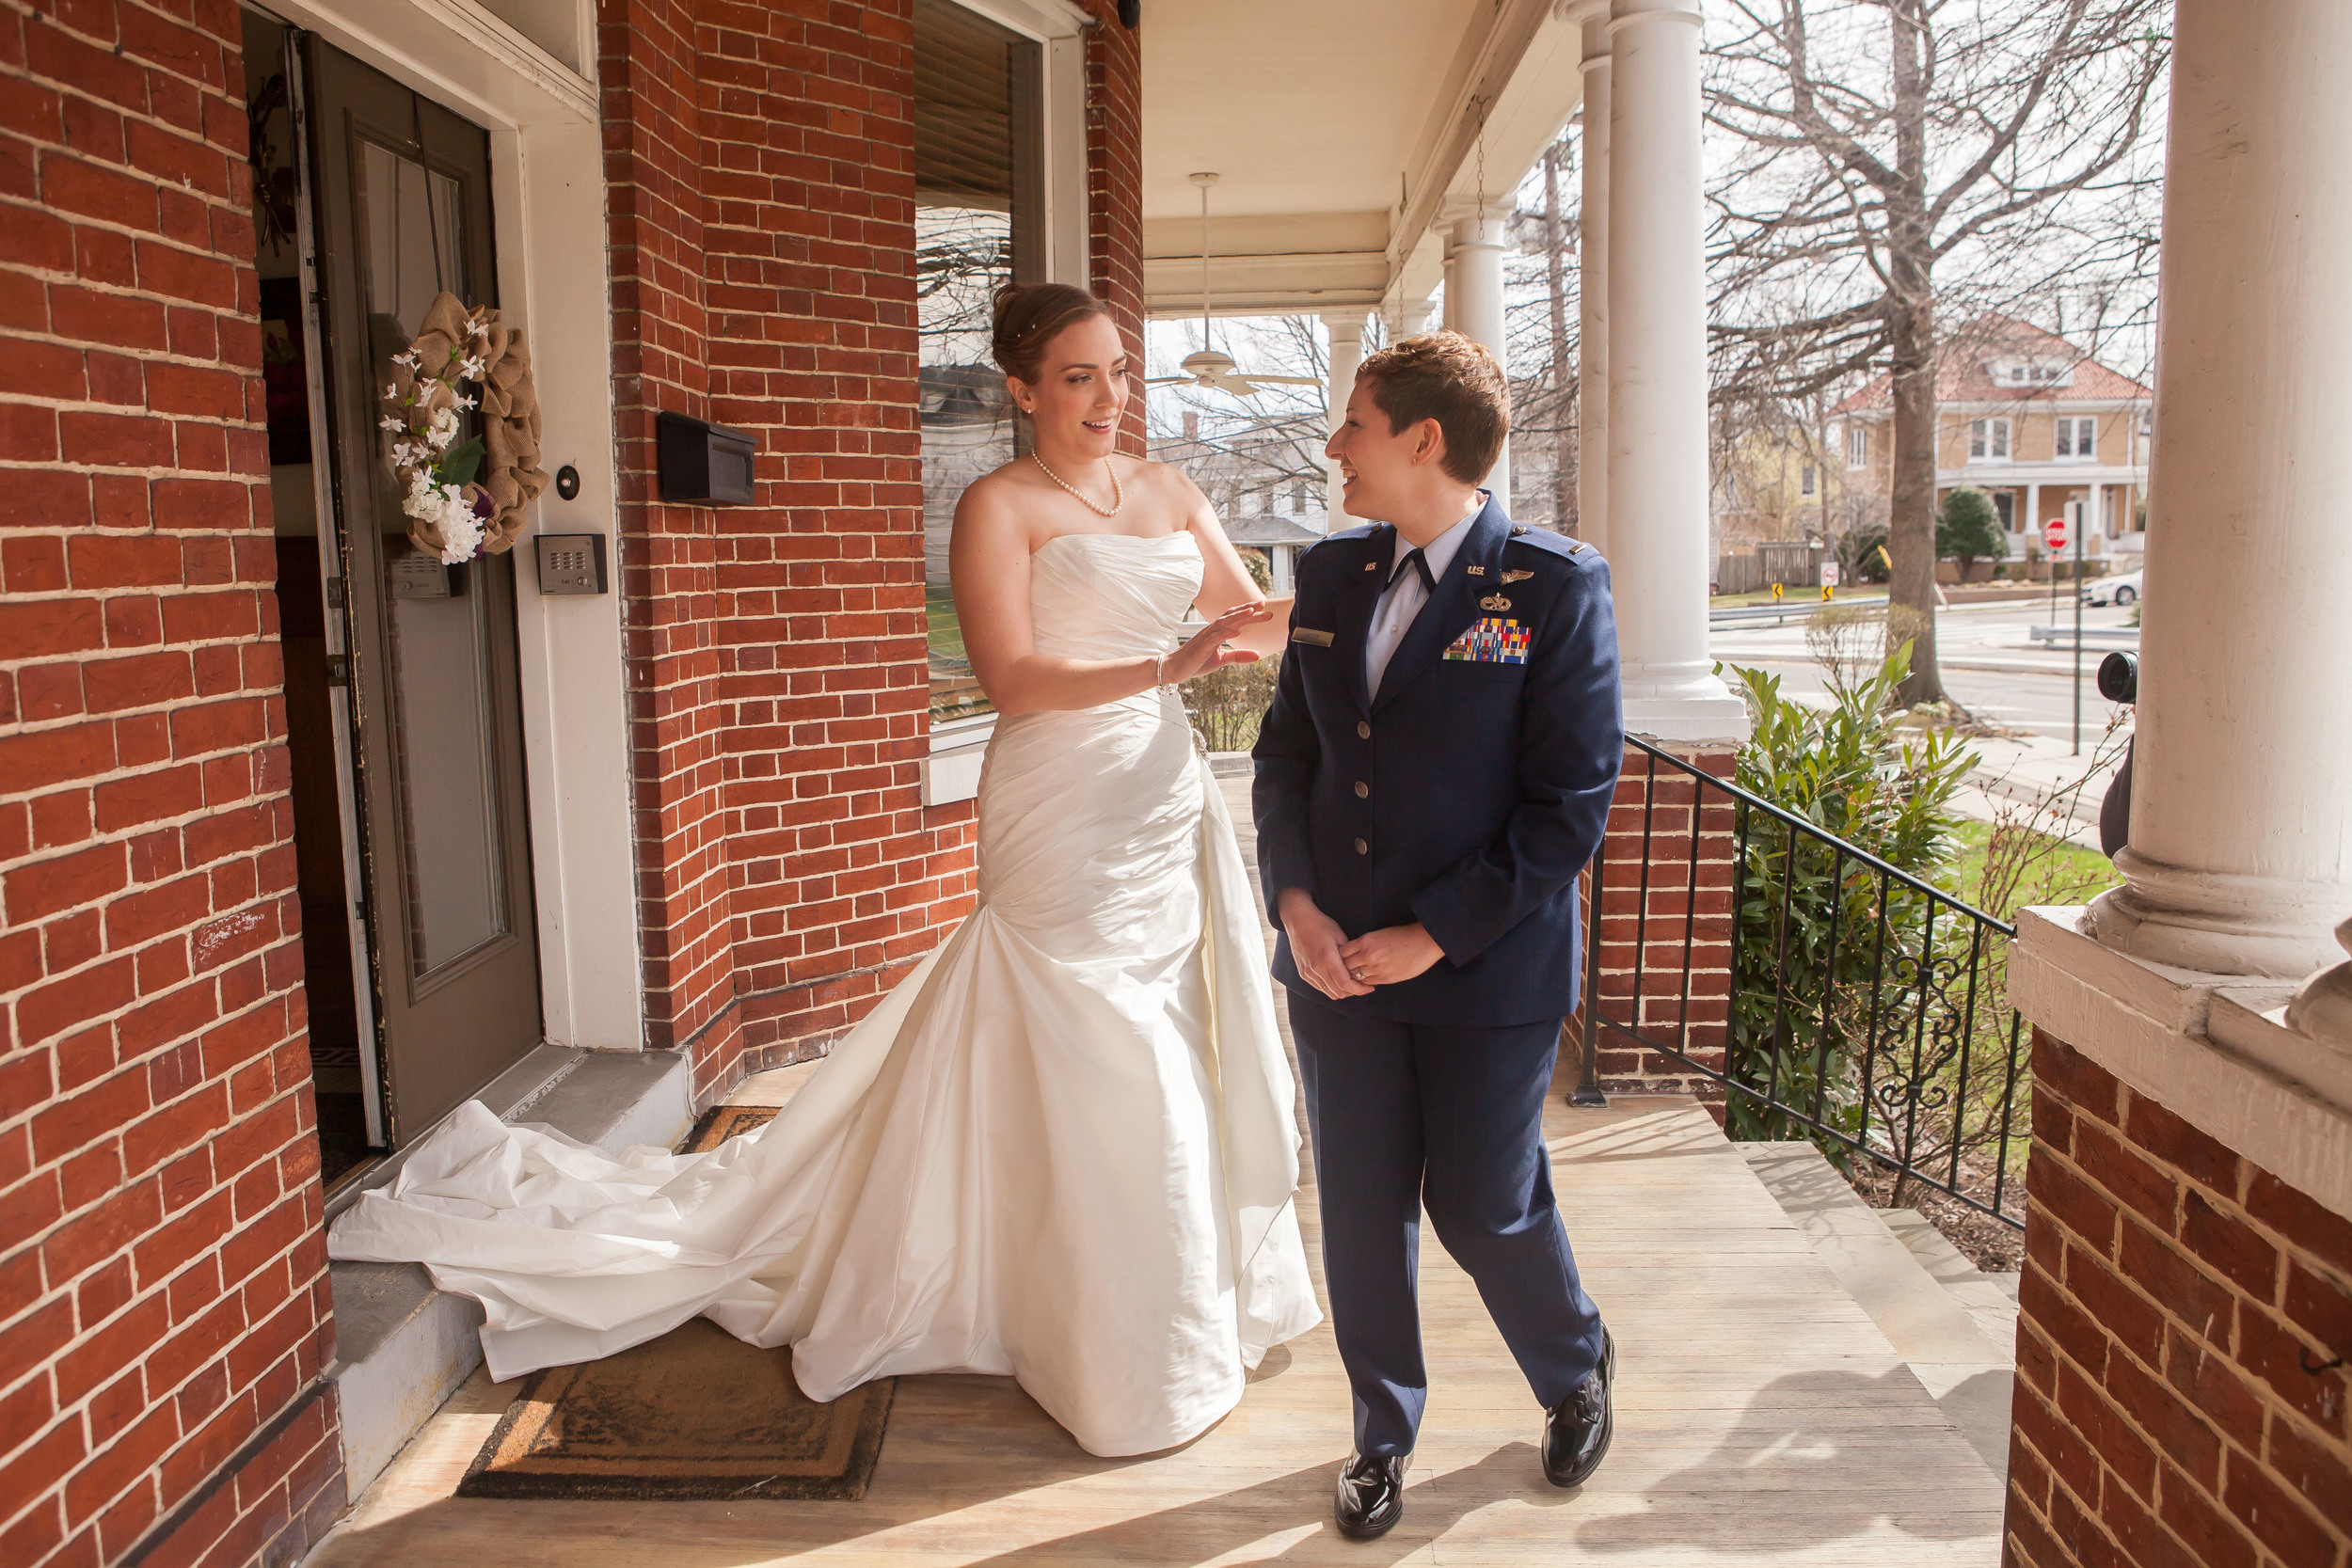 Megan and Alison had a First Look on the front porch before their ceremony.